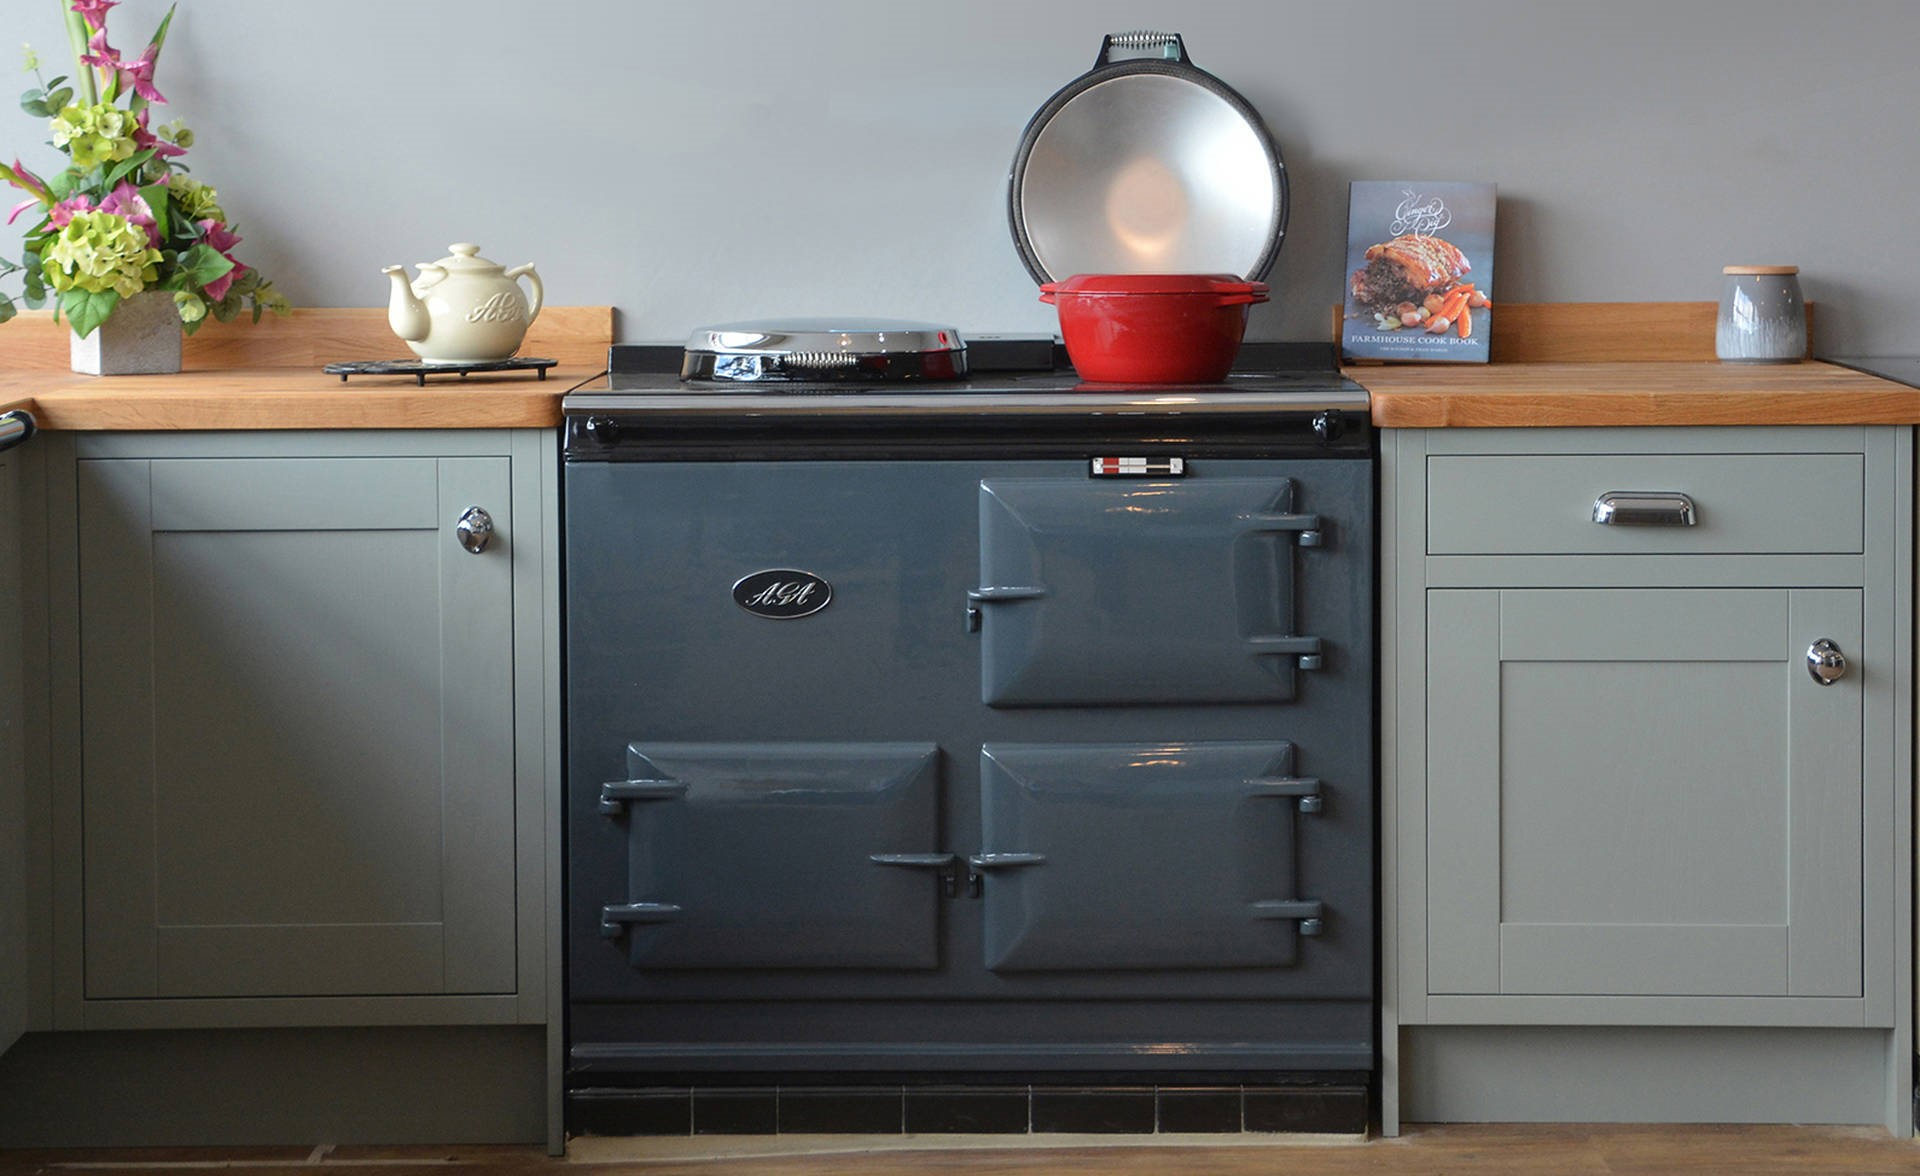 <p>2 Oven Post 74 Electric Aga Cooker</p><p>Installed in Dorset